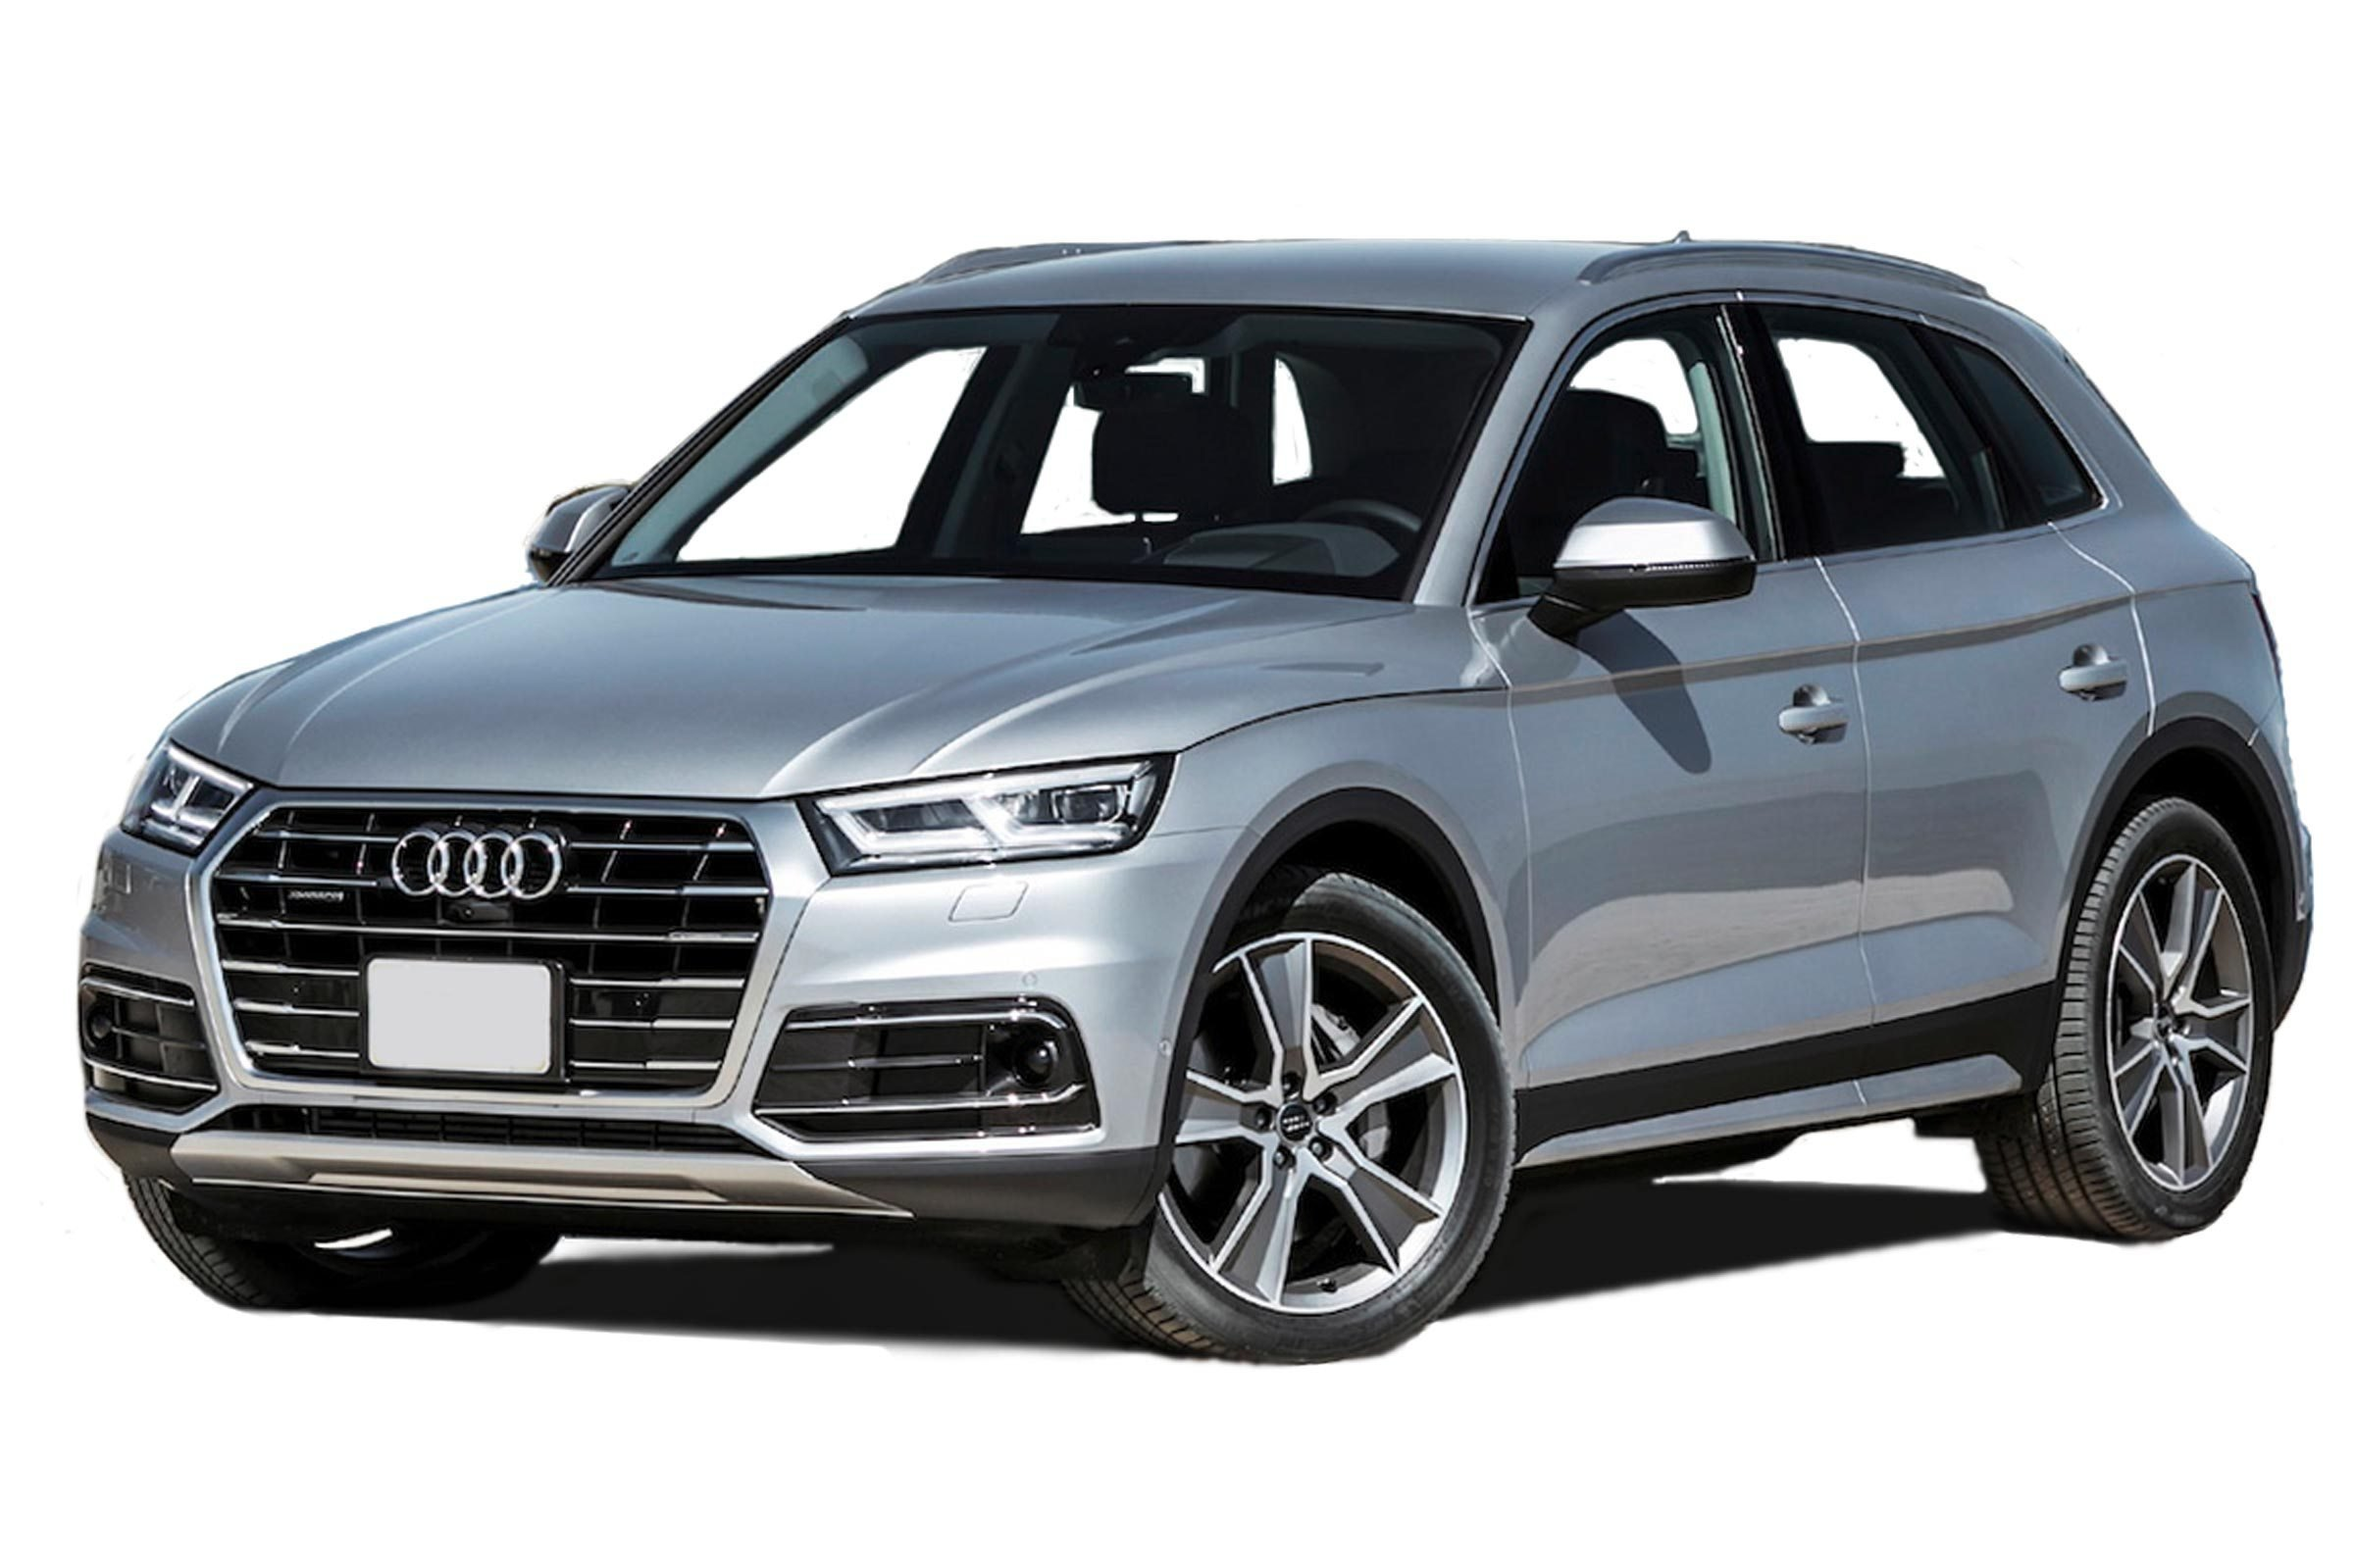 Latest Audi Q5 Suv Engines Top Speed Performance Carbuyer Free Download